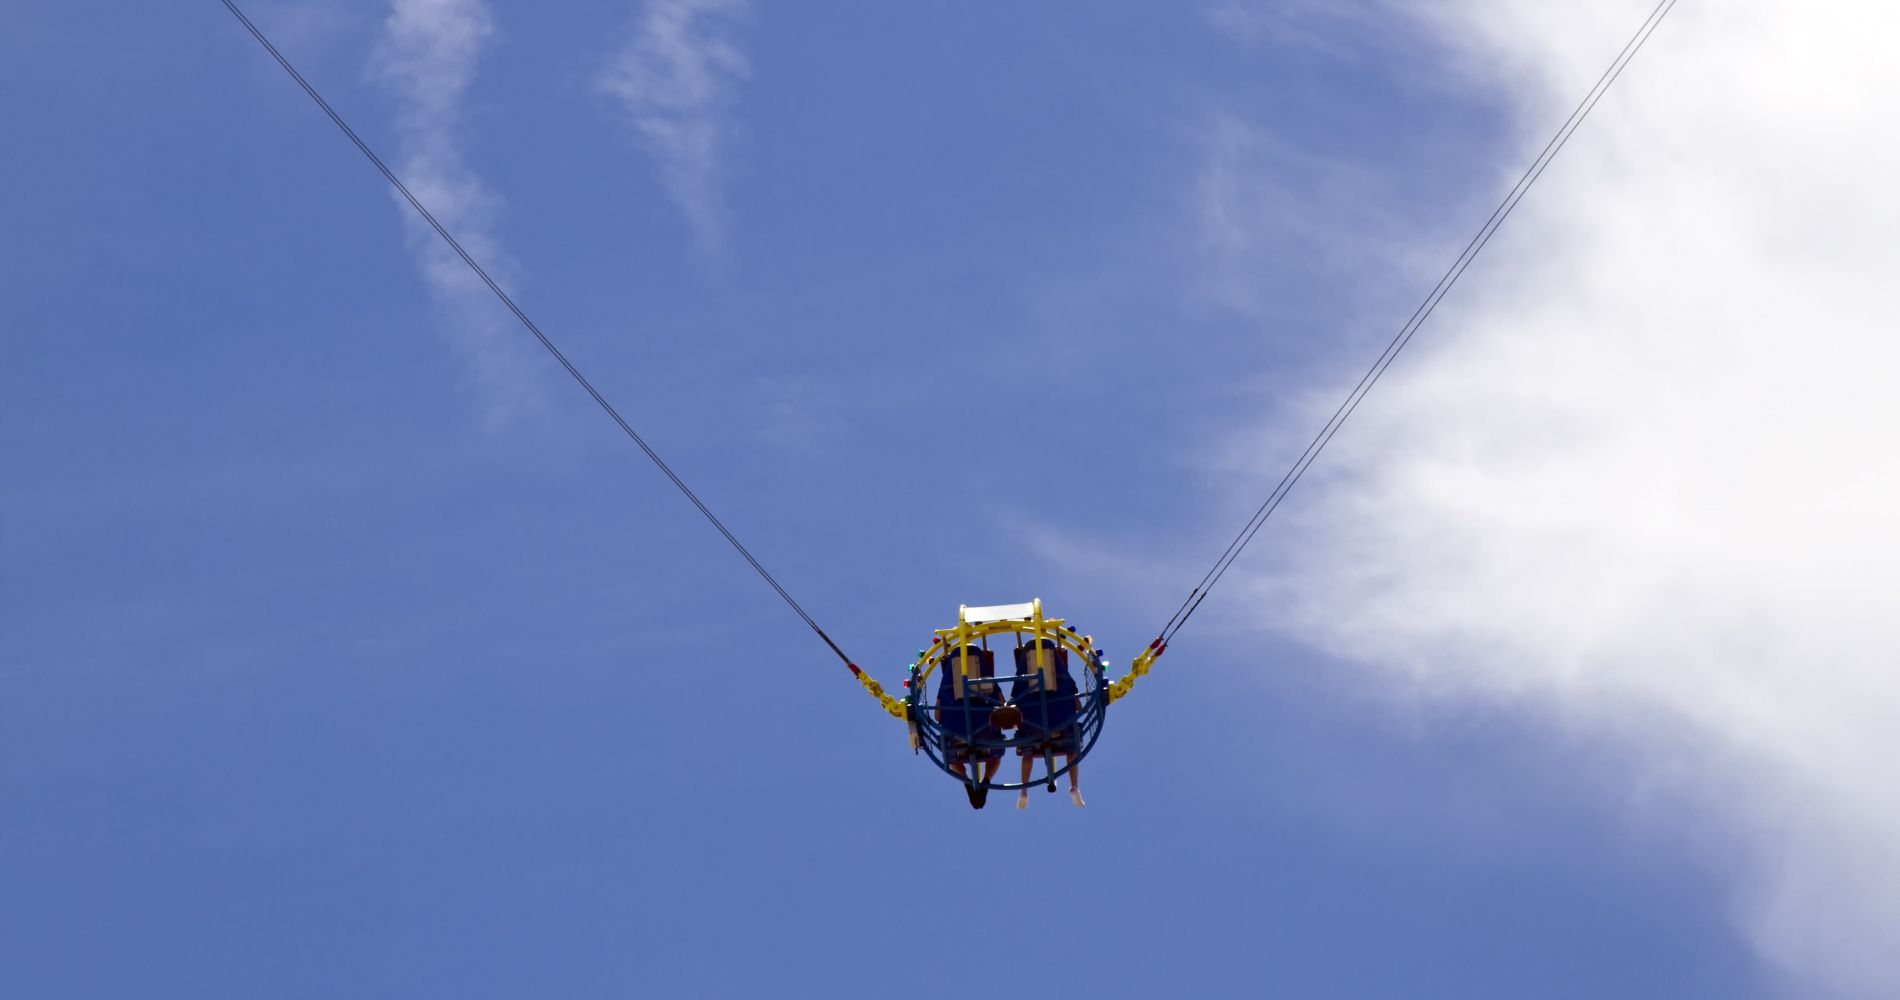 Visit SkyCoaster at Fun Spot America and other Attractions